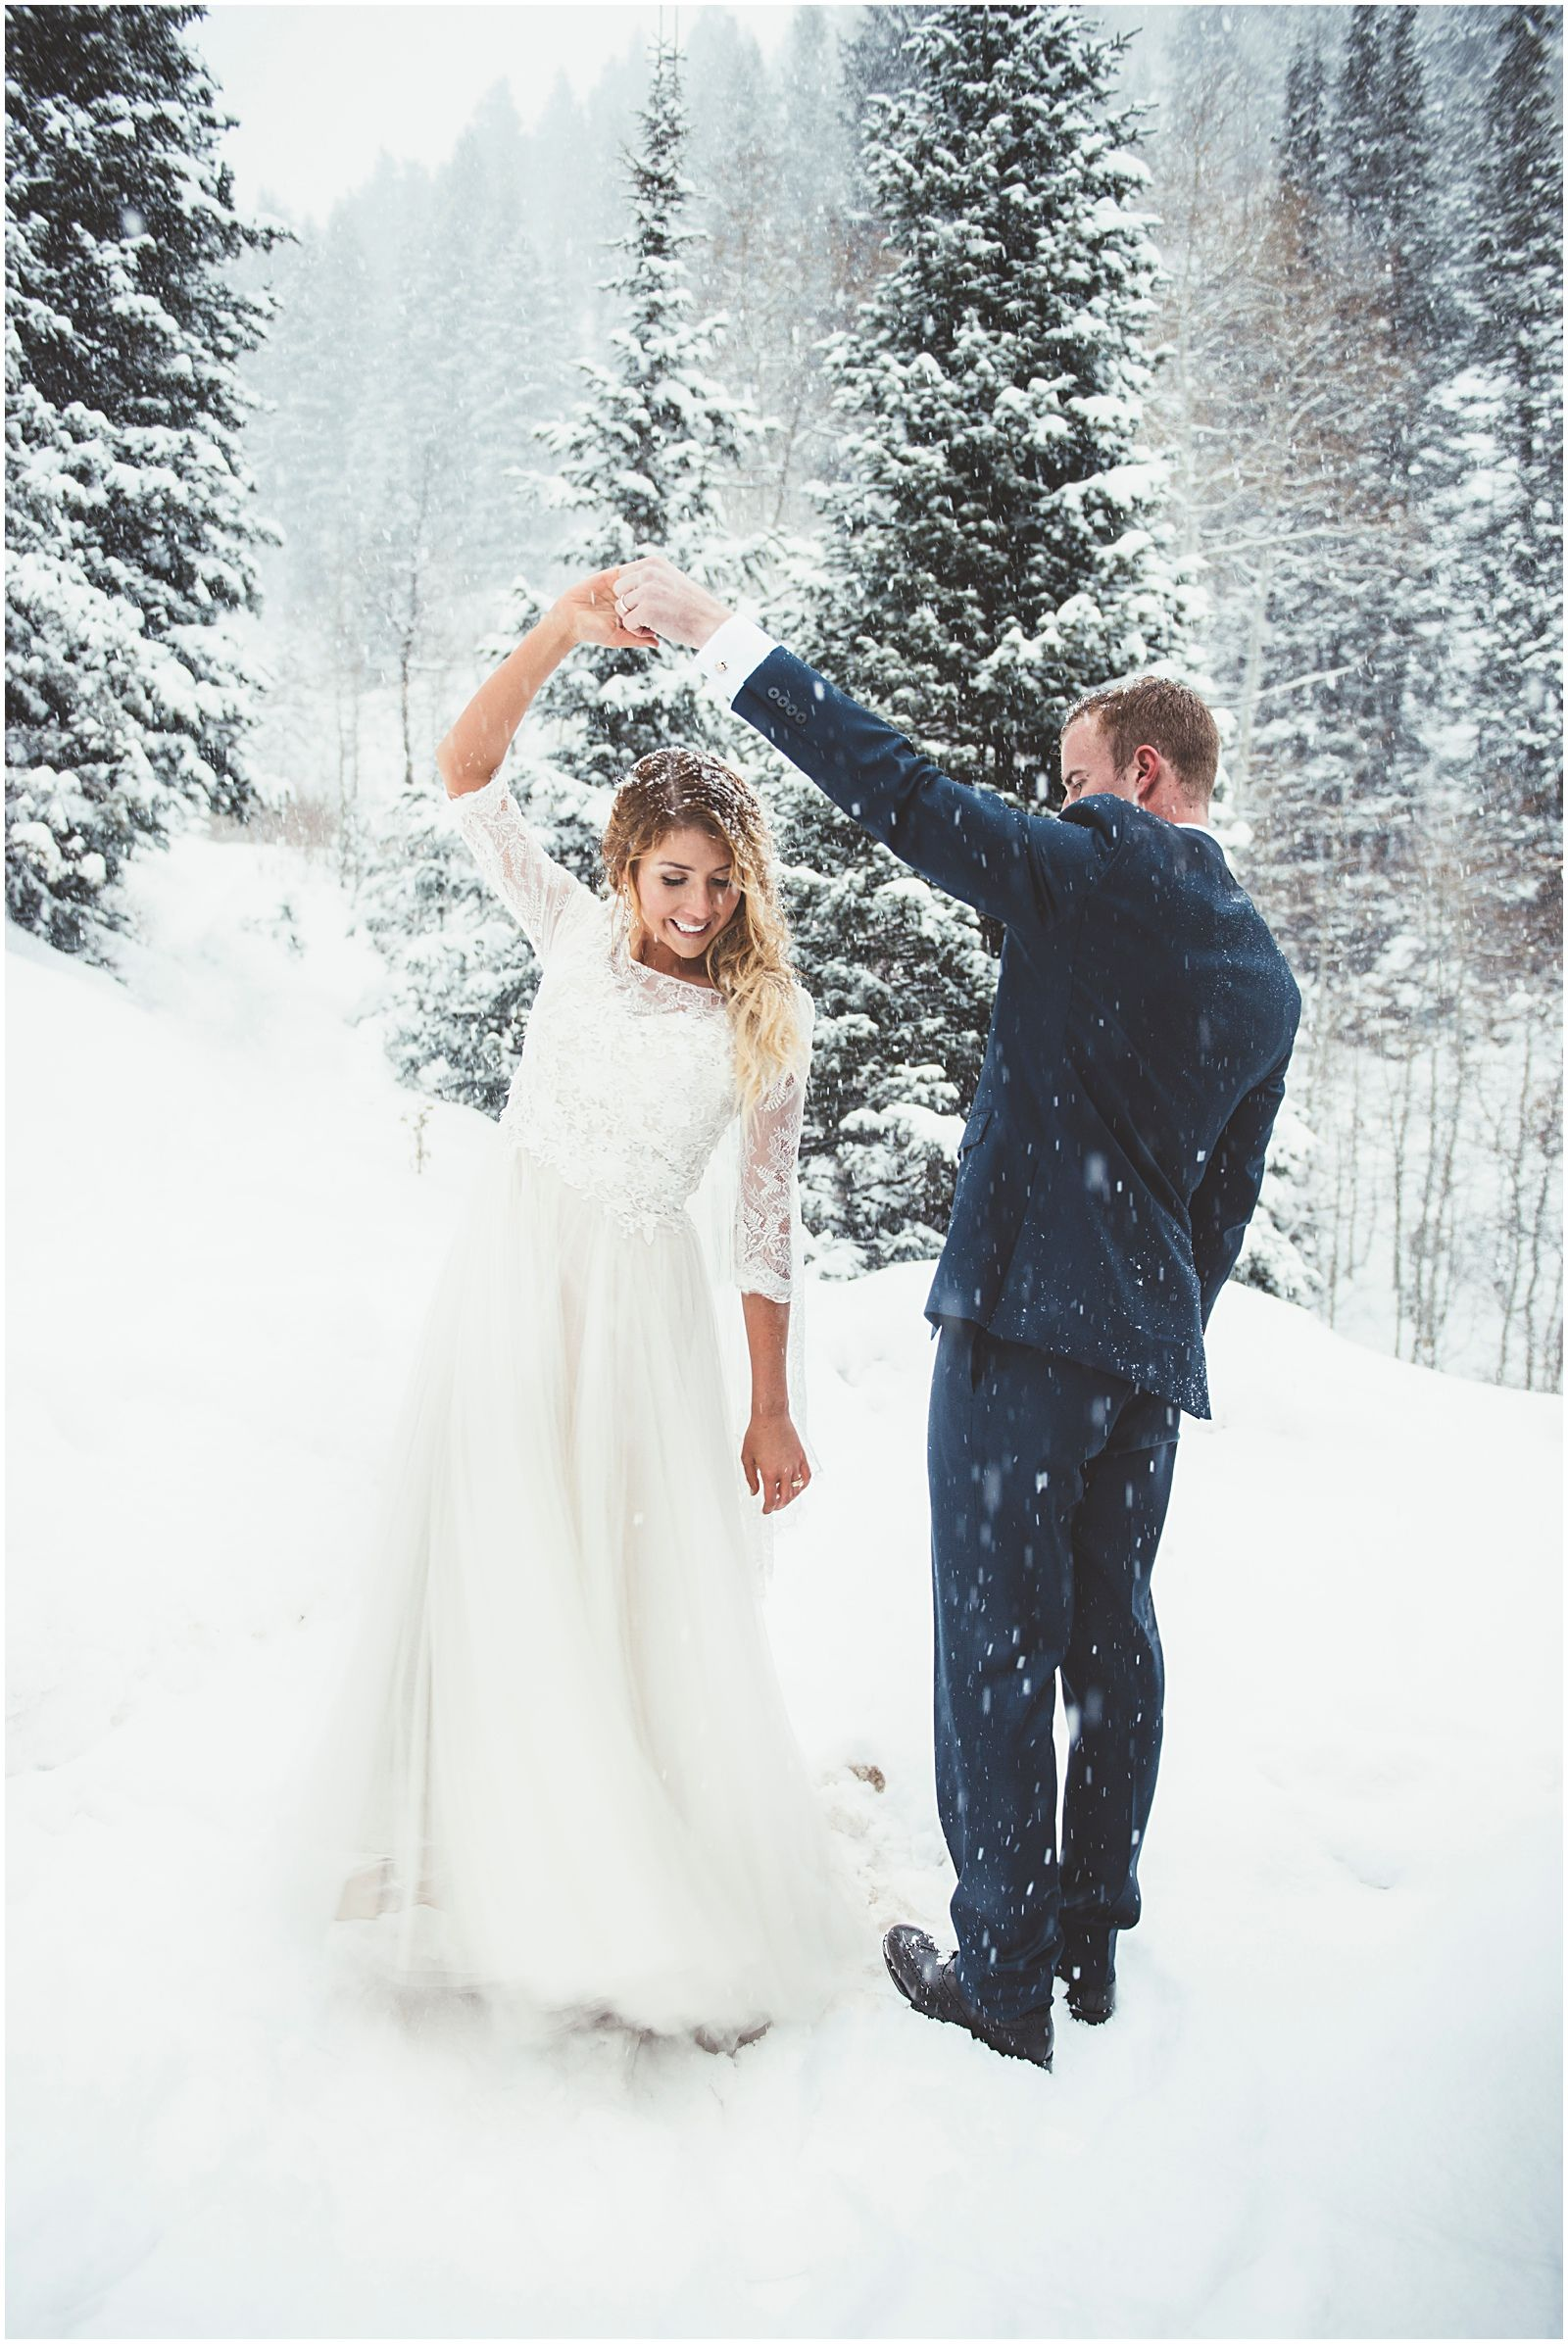 Photo of Snowfall Formal Session | I've got your love to keep me warm